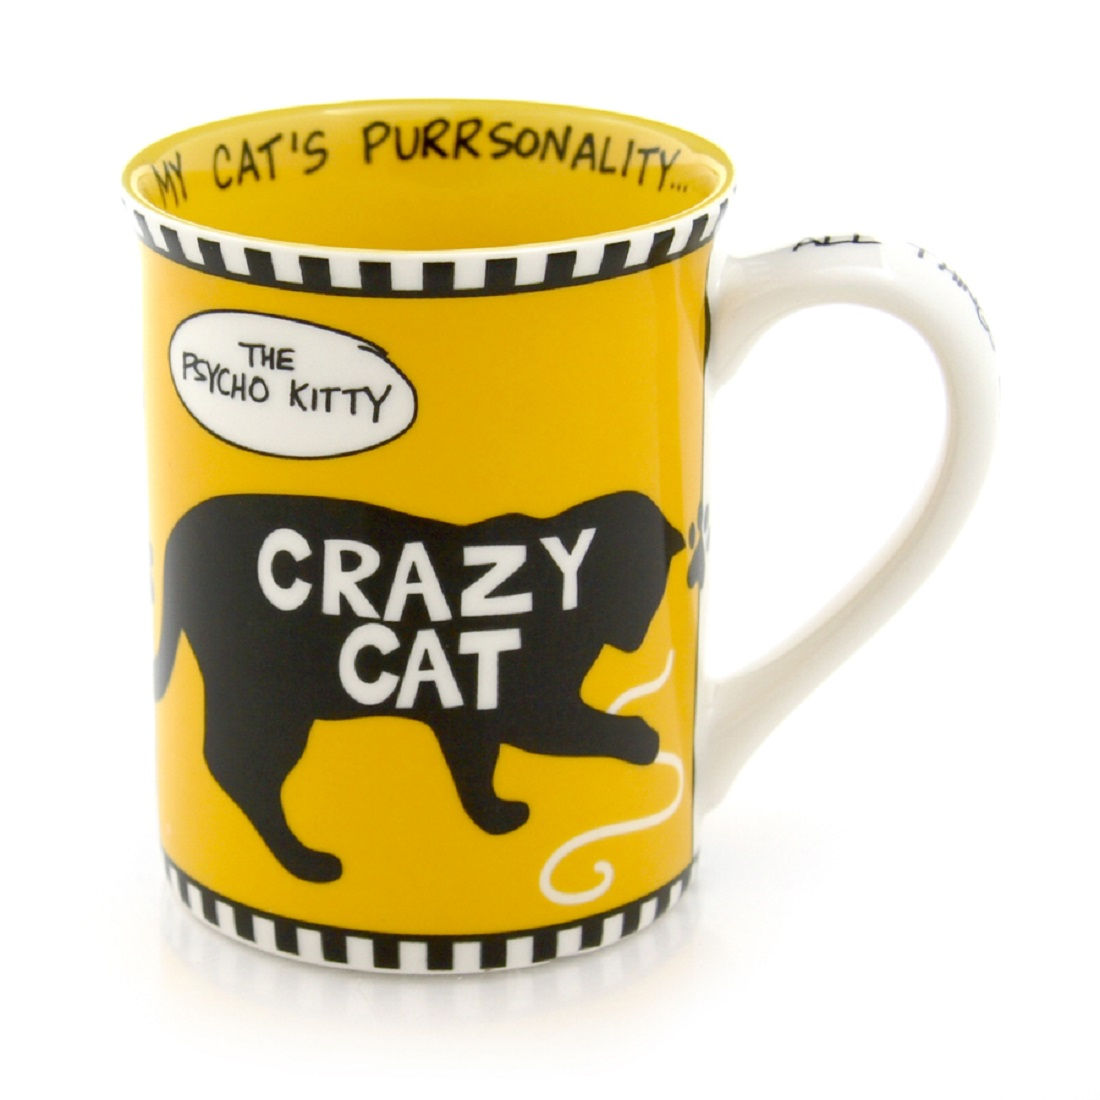 "CRAZY CAT ""The Pyscho Kitty"" Coffee Mug 16-ounce Cat Mom Cat Lover"